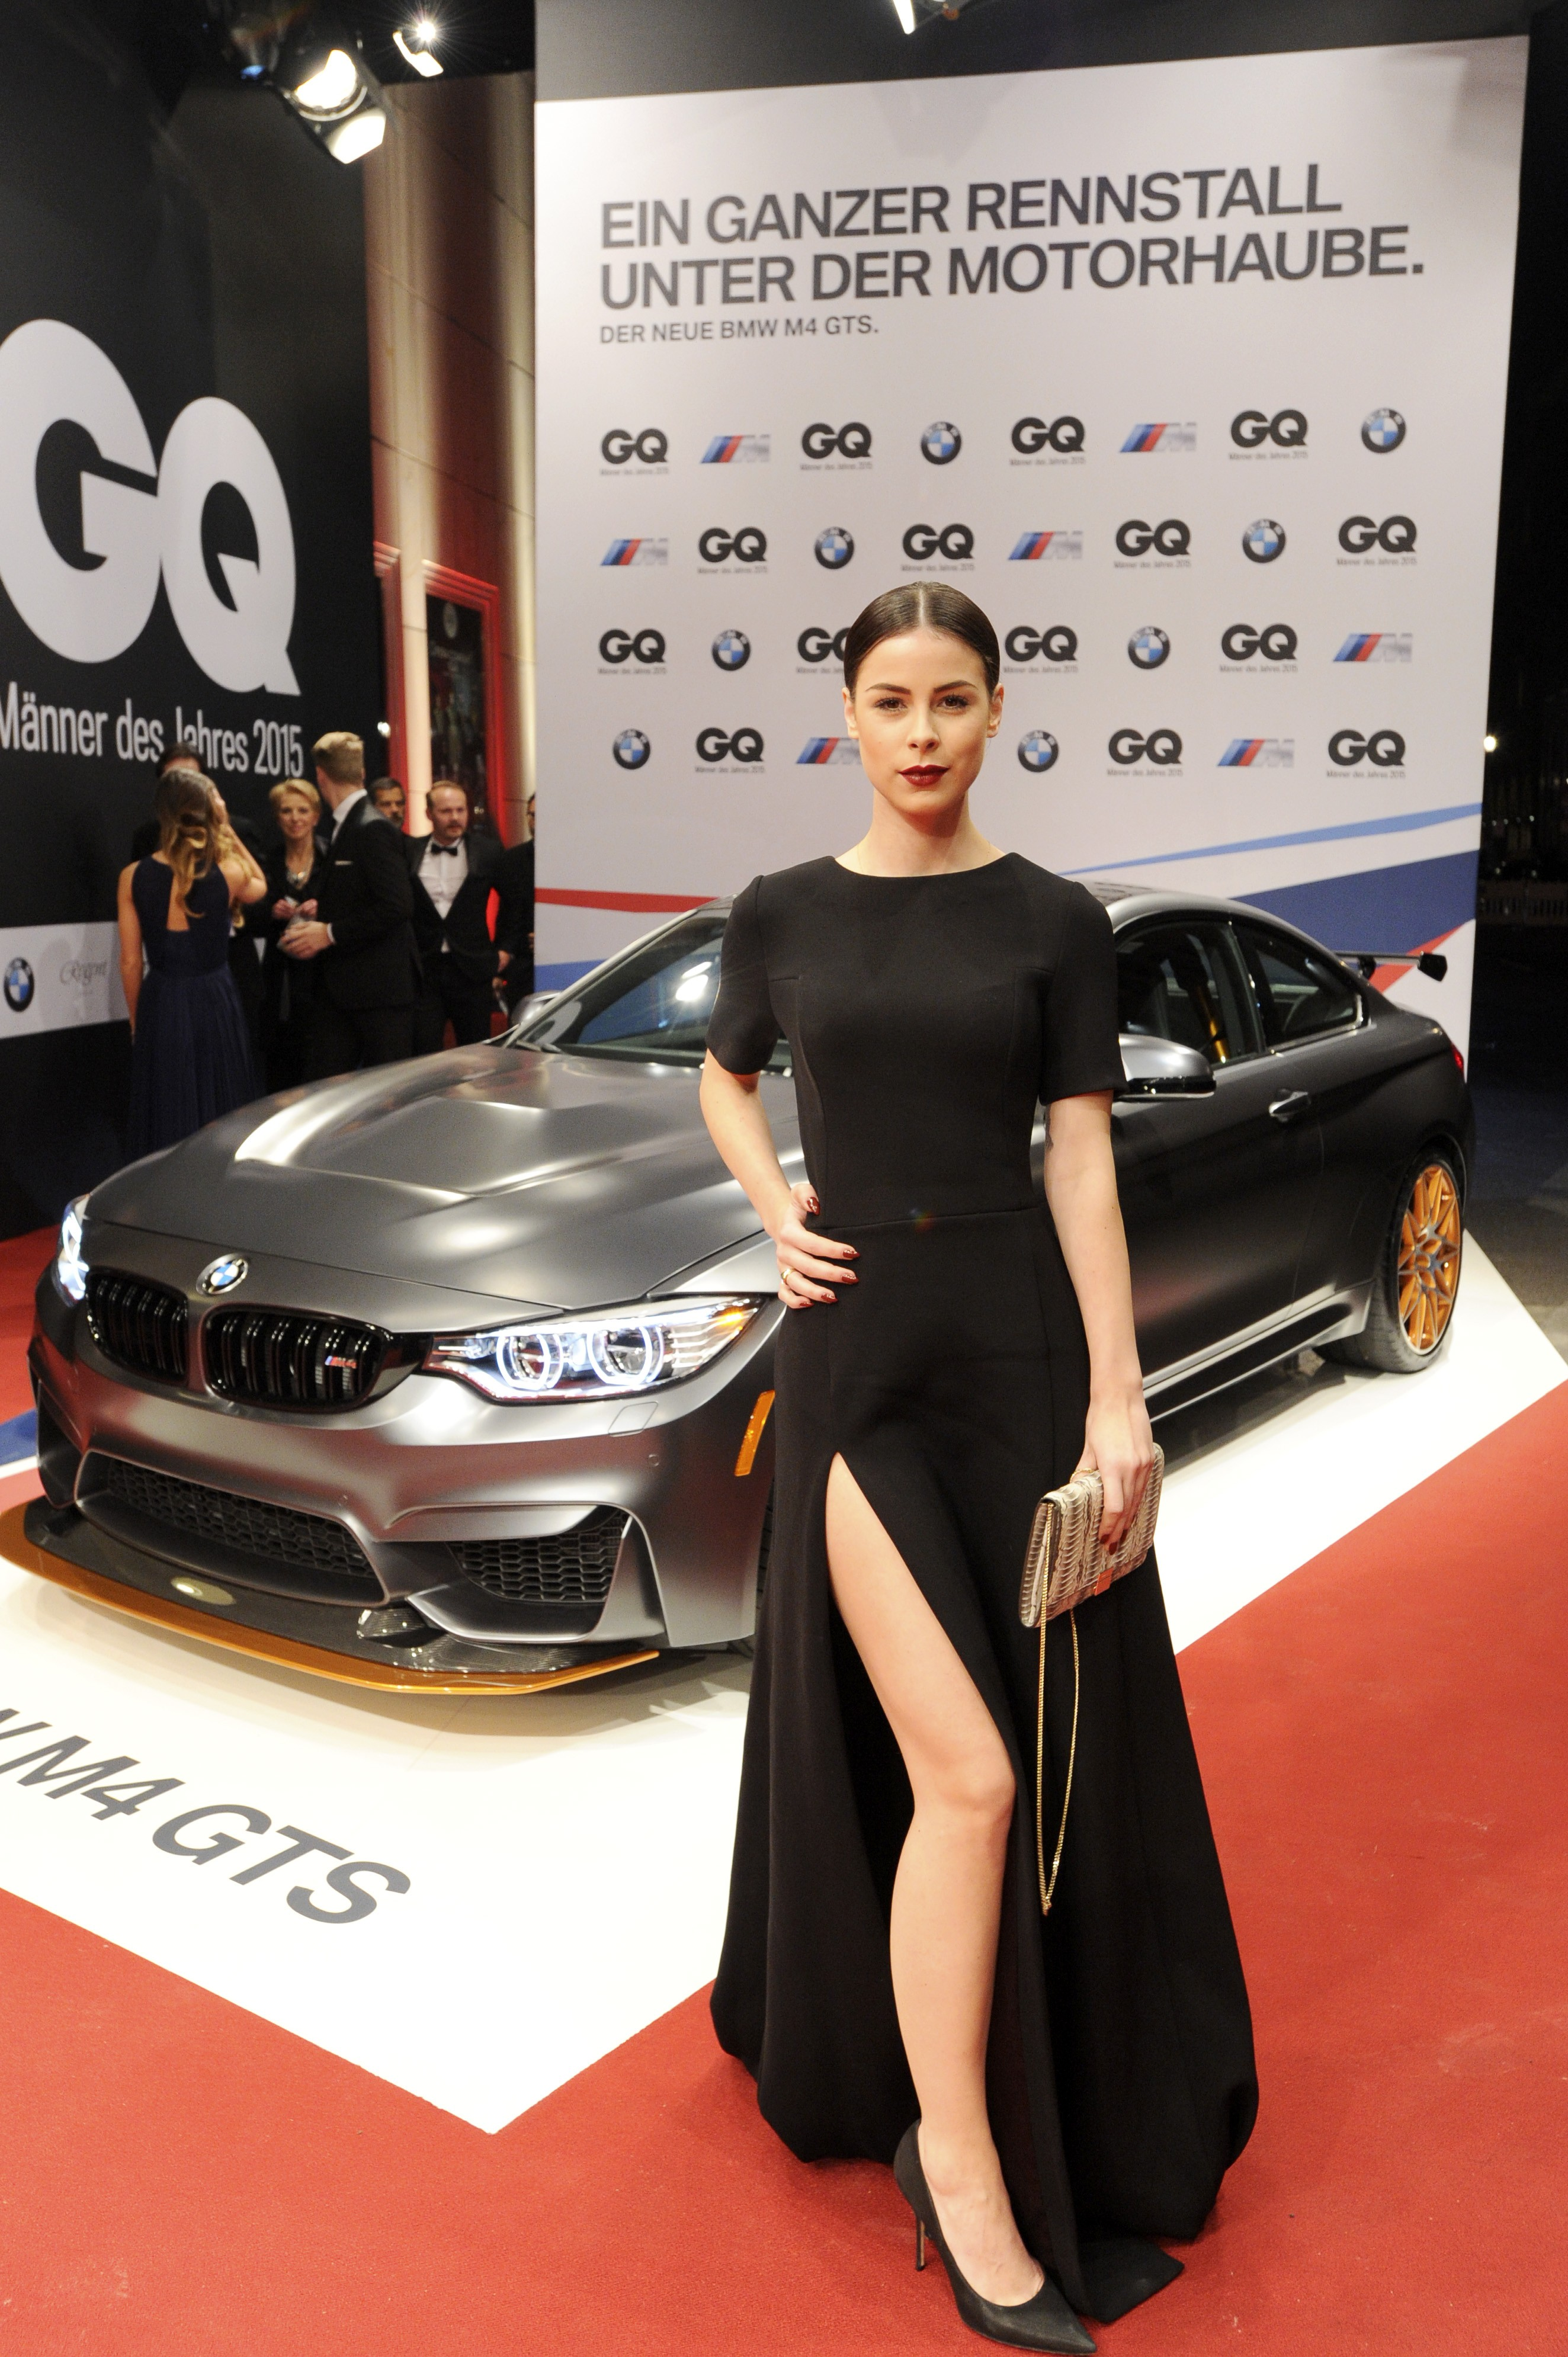 International Auto Show >> Celebrities Take Turns Posing with the BMW M4 GTS at GQ Men of the Year Awards - autoevolution